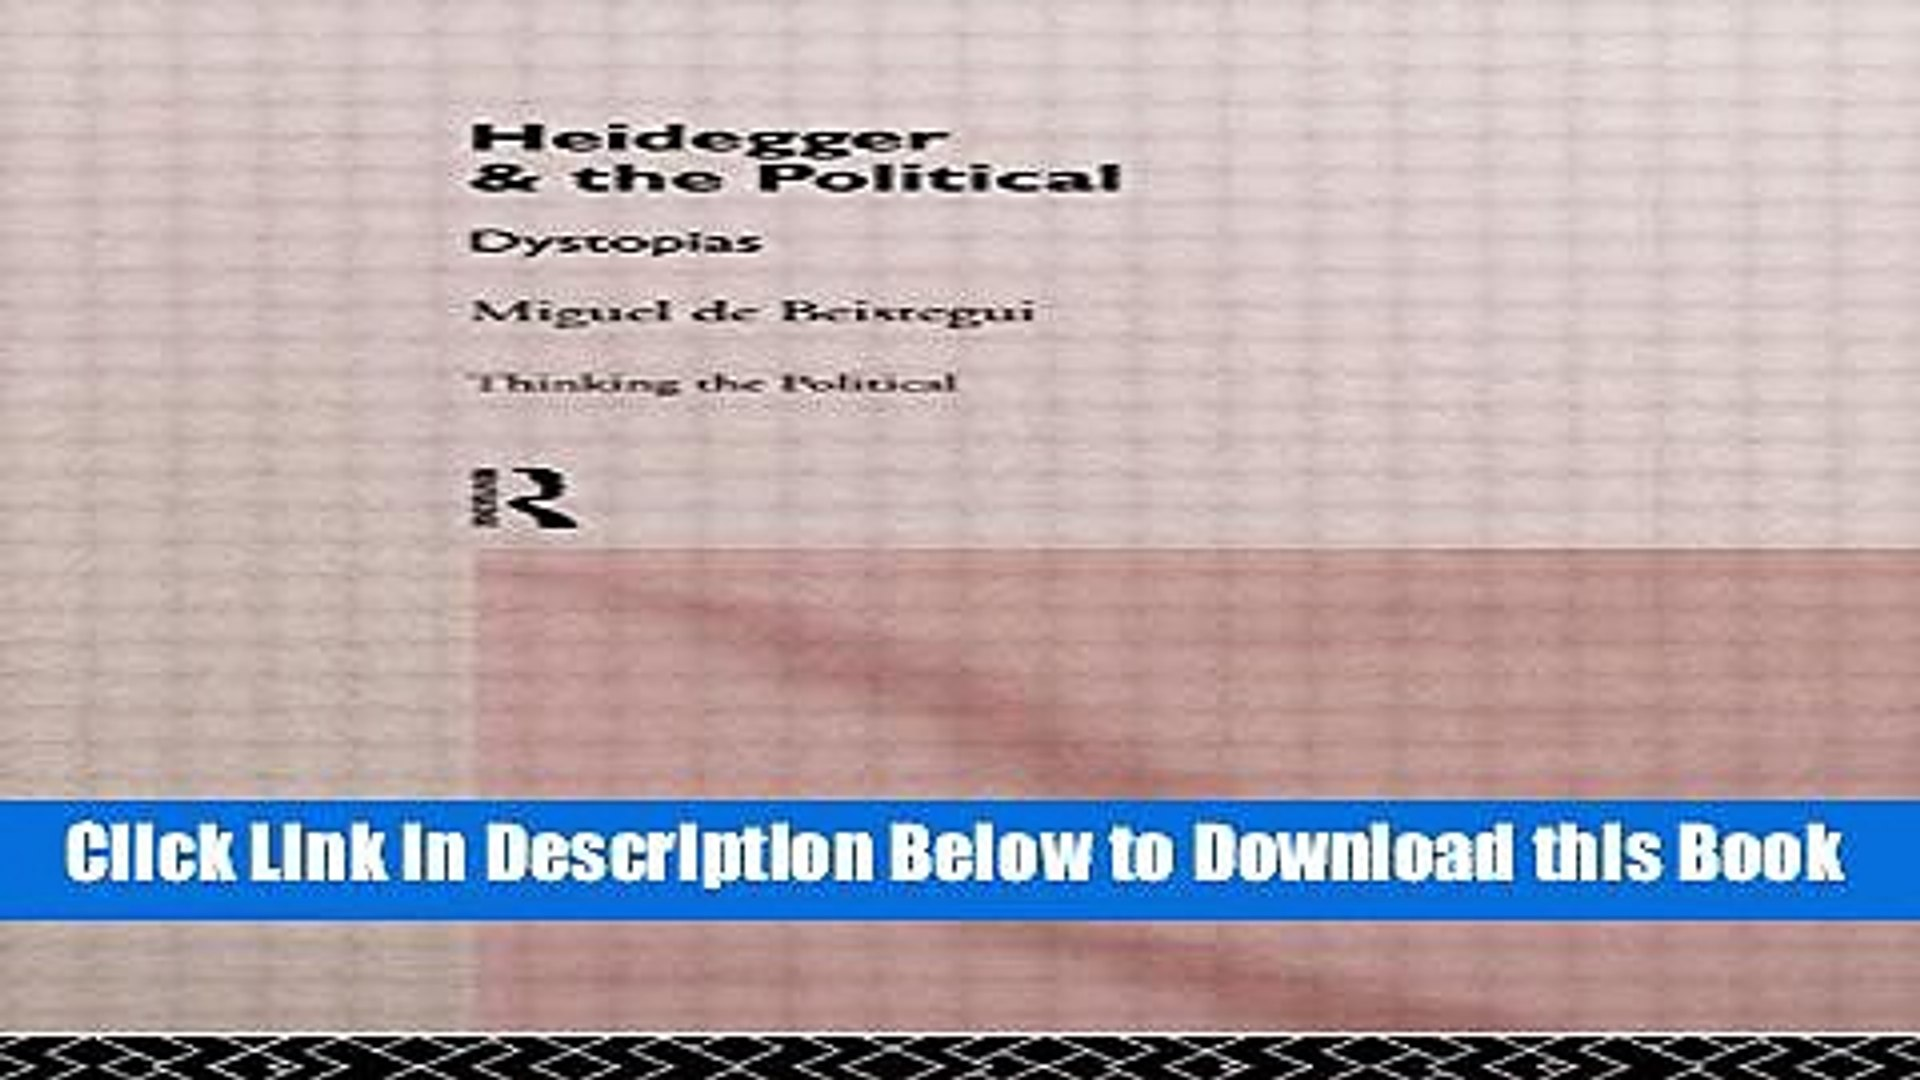 [Best] Heidegger and the Political (Thinking the Political) Free Books